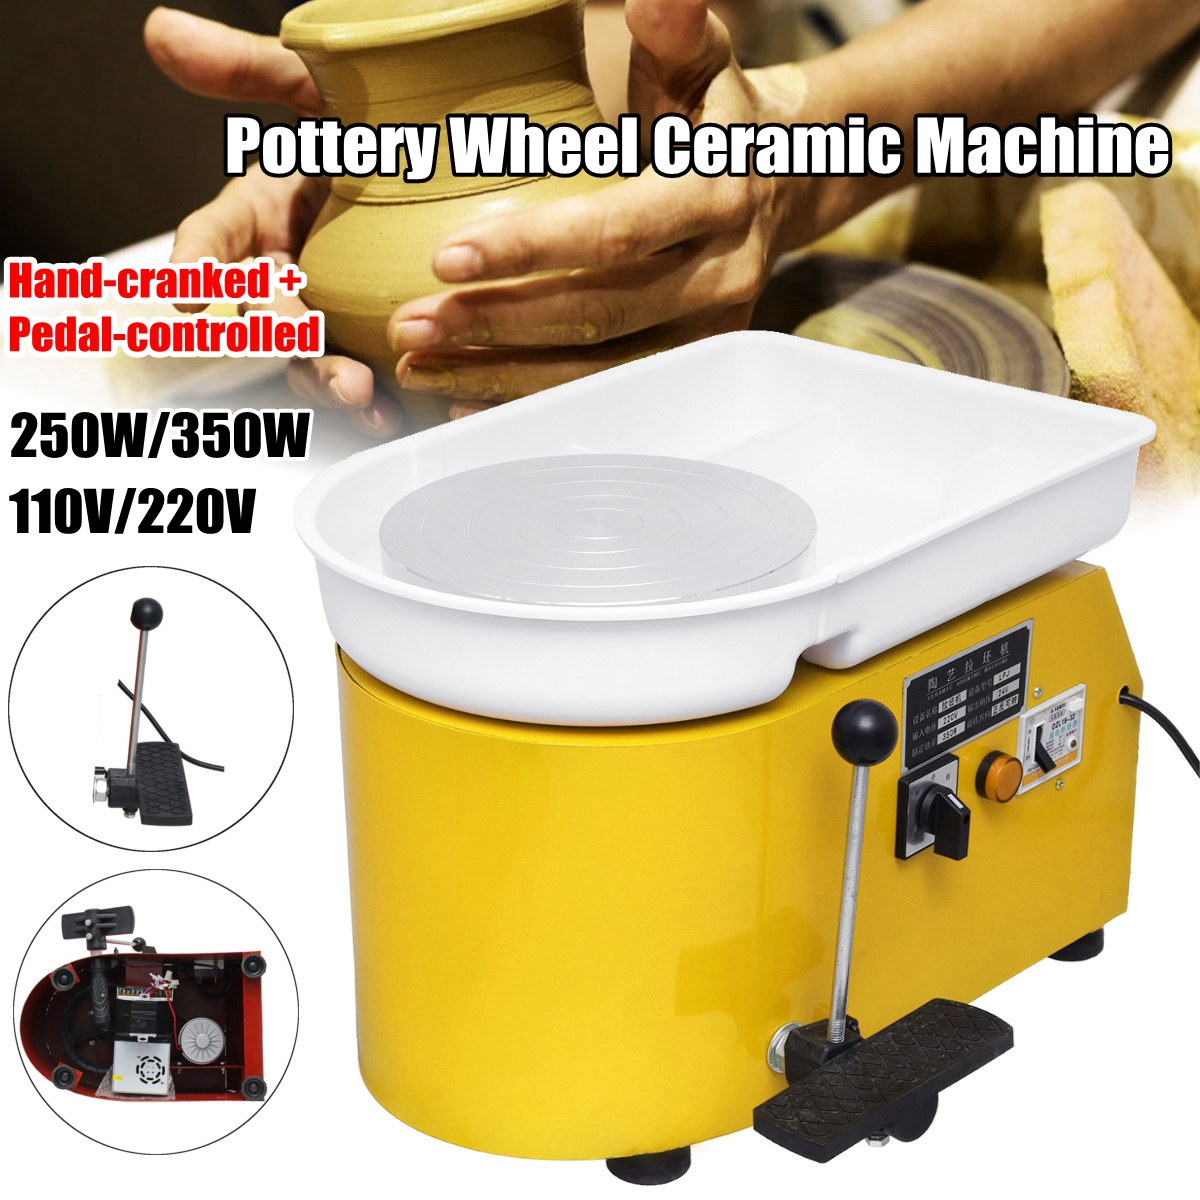 110V 220V Pottery Forming Machine 250W 350W Electric Pottery Wheel DIY Clay Tool with Tray For